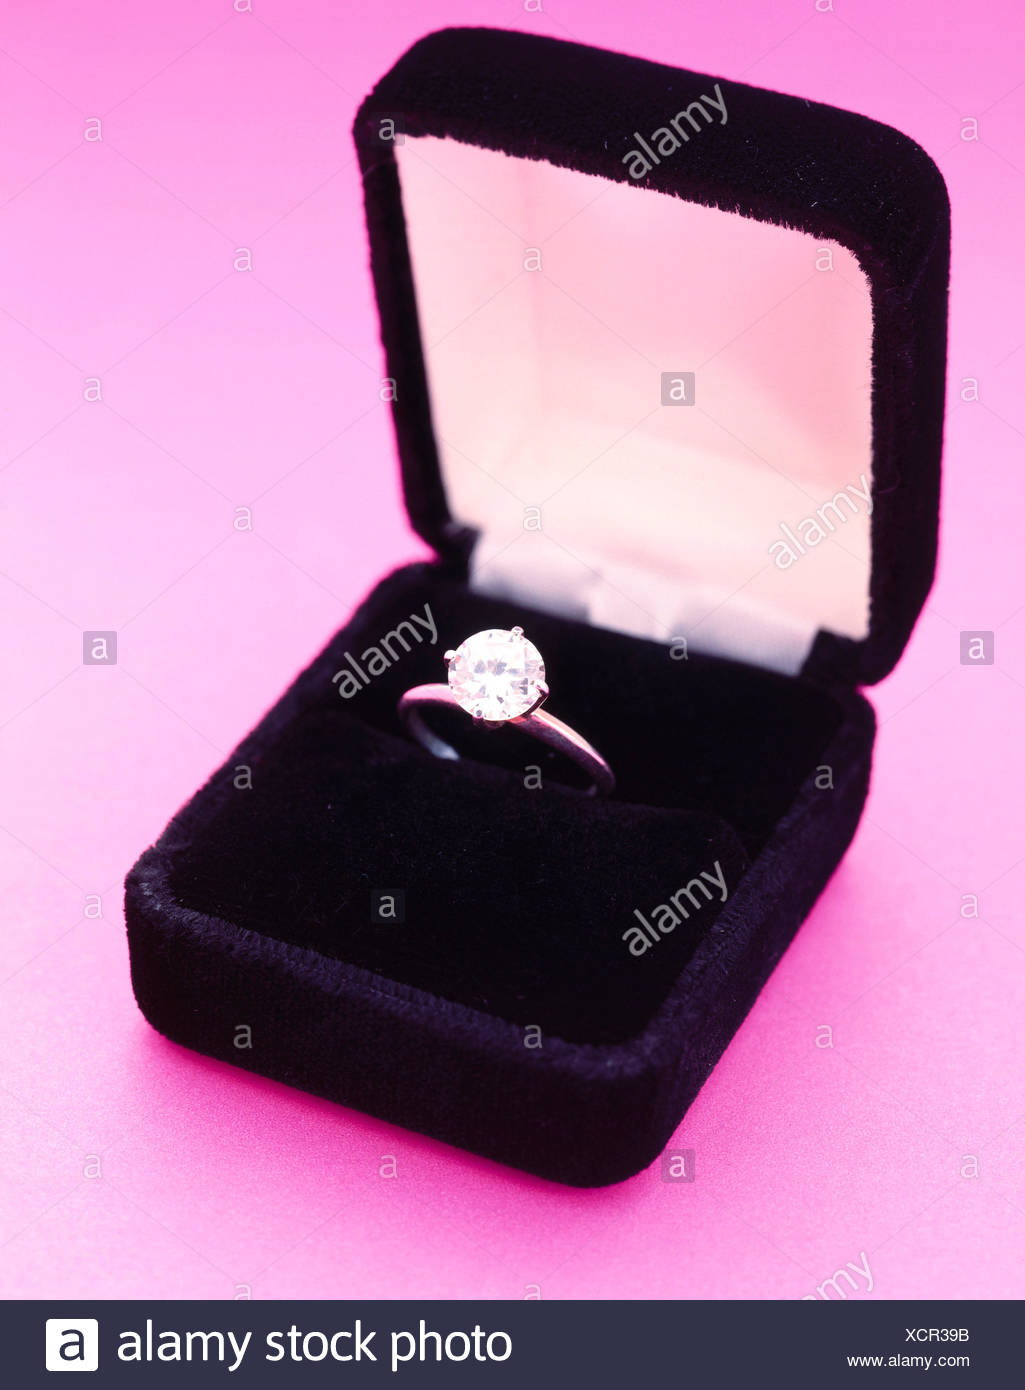 Ring In Box Stock Photos & Ring In Box Stock Images - Alamy